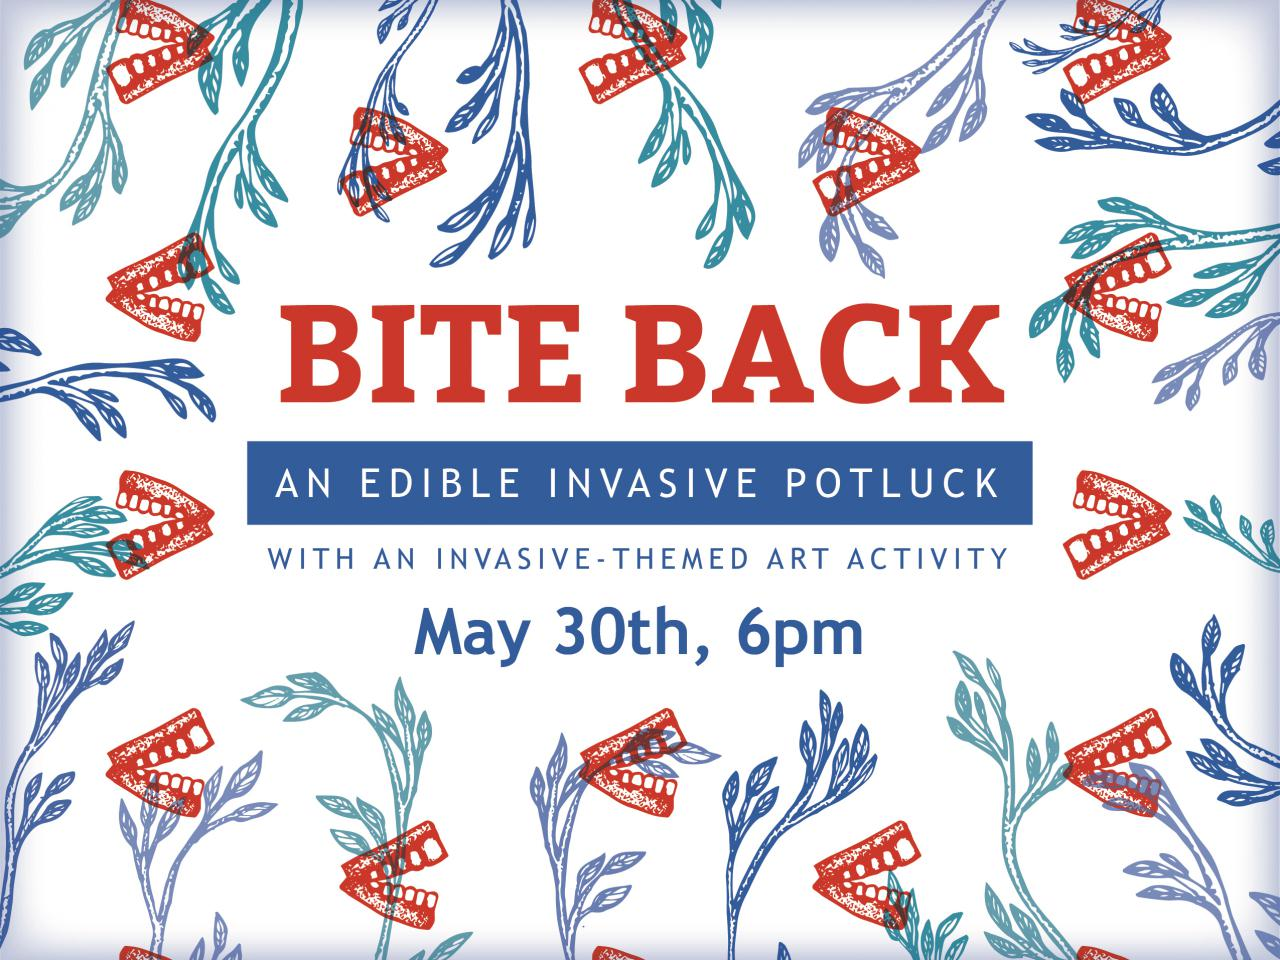 bite-back-edible-invasives-potluck-small.jpg